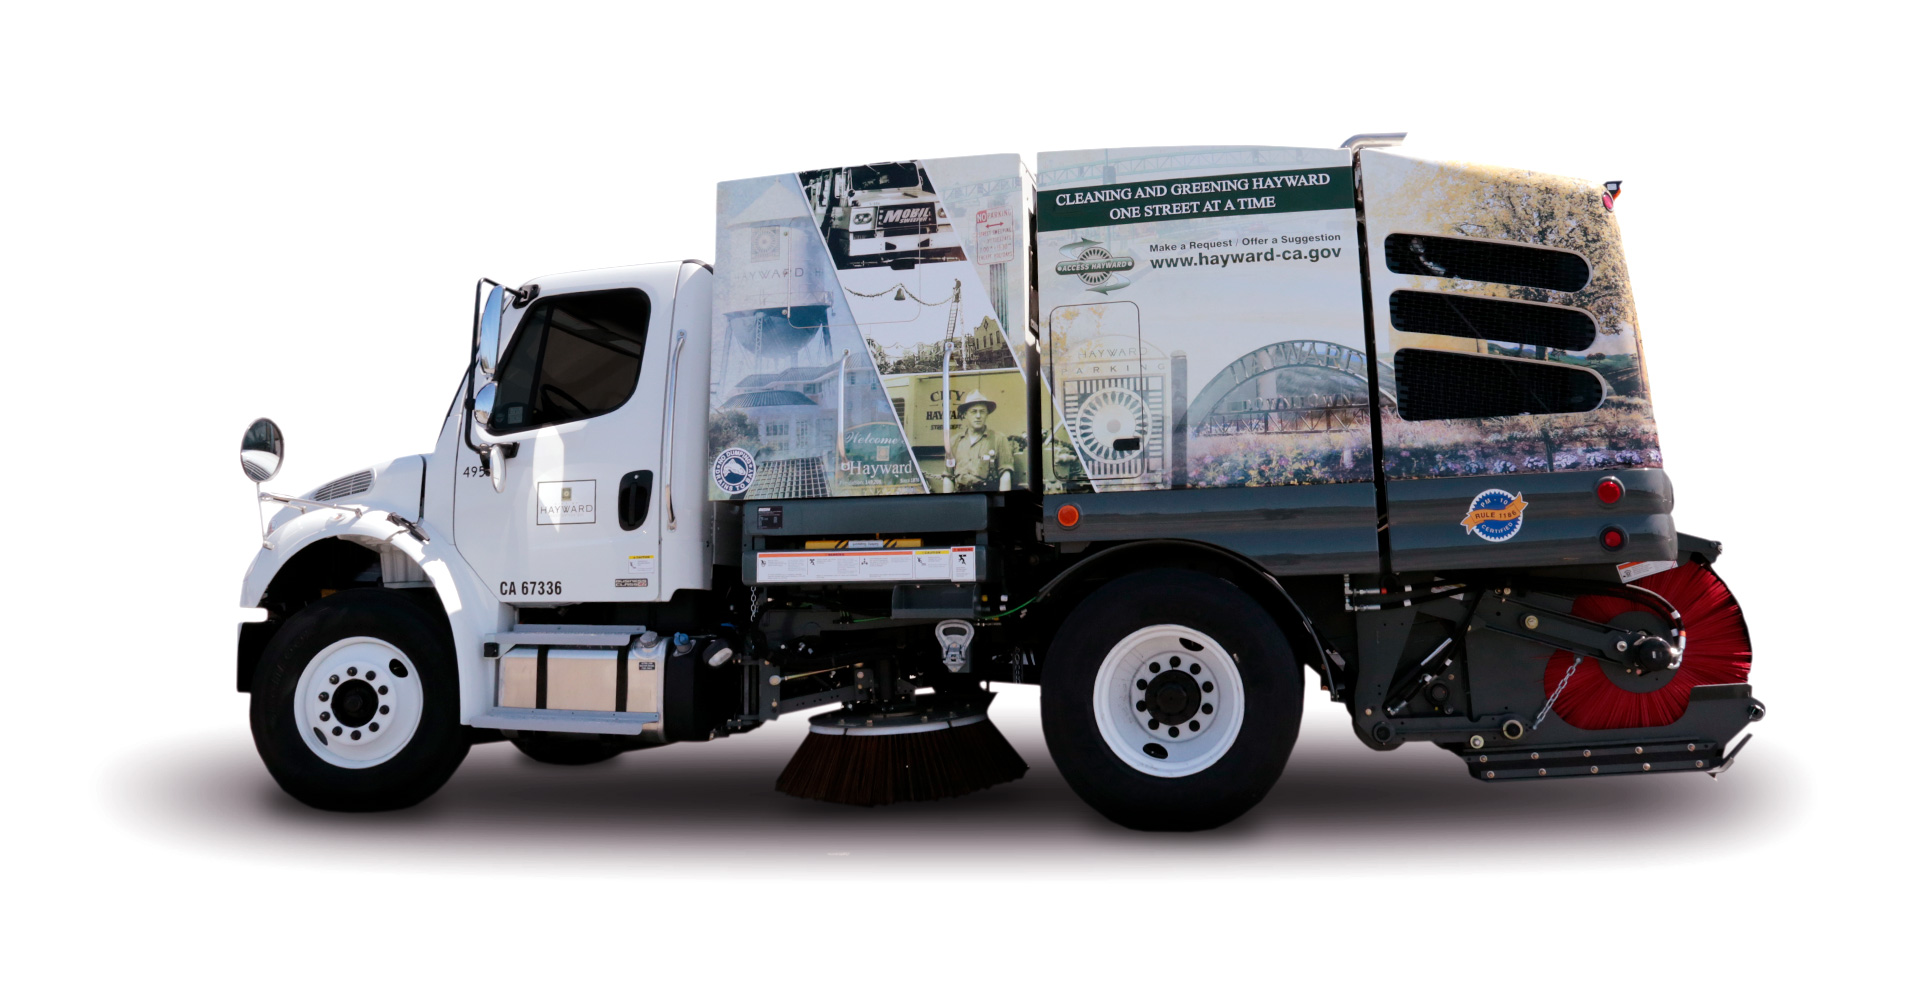 city of hayward street sweeper c